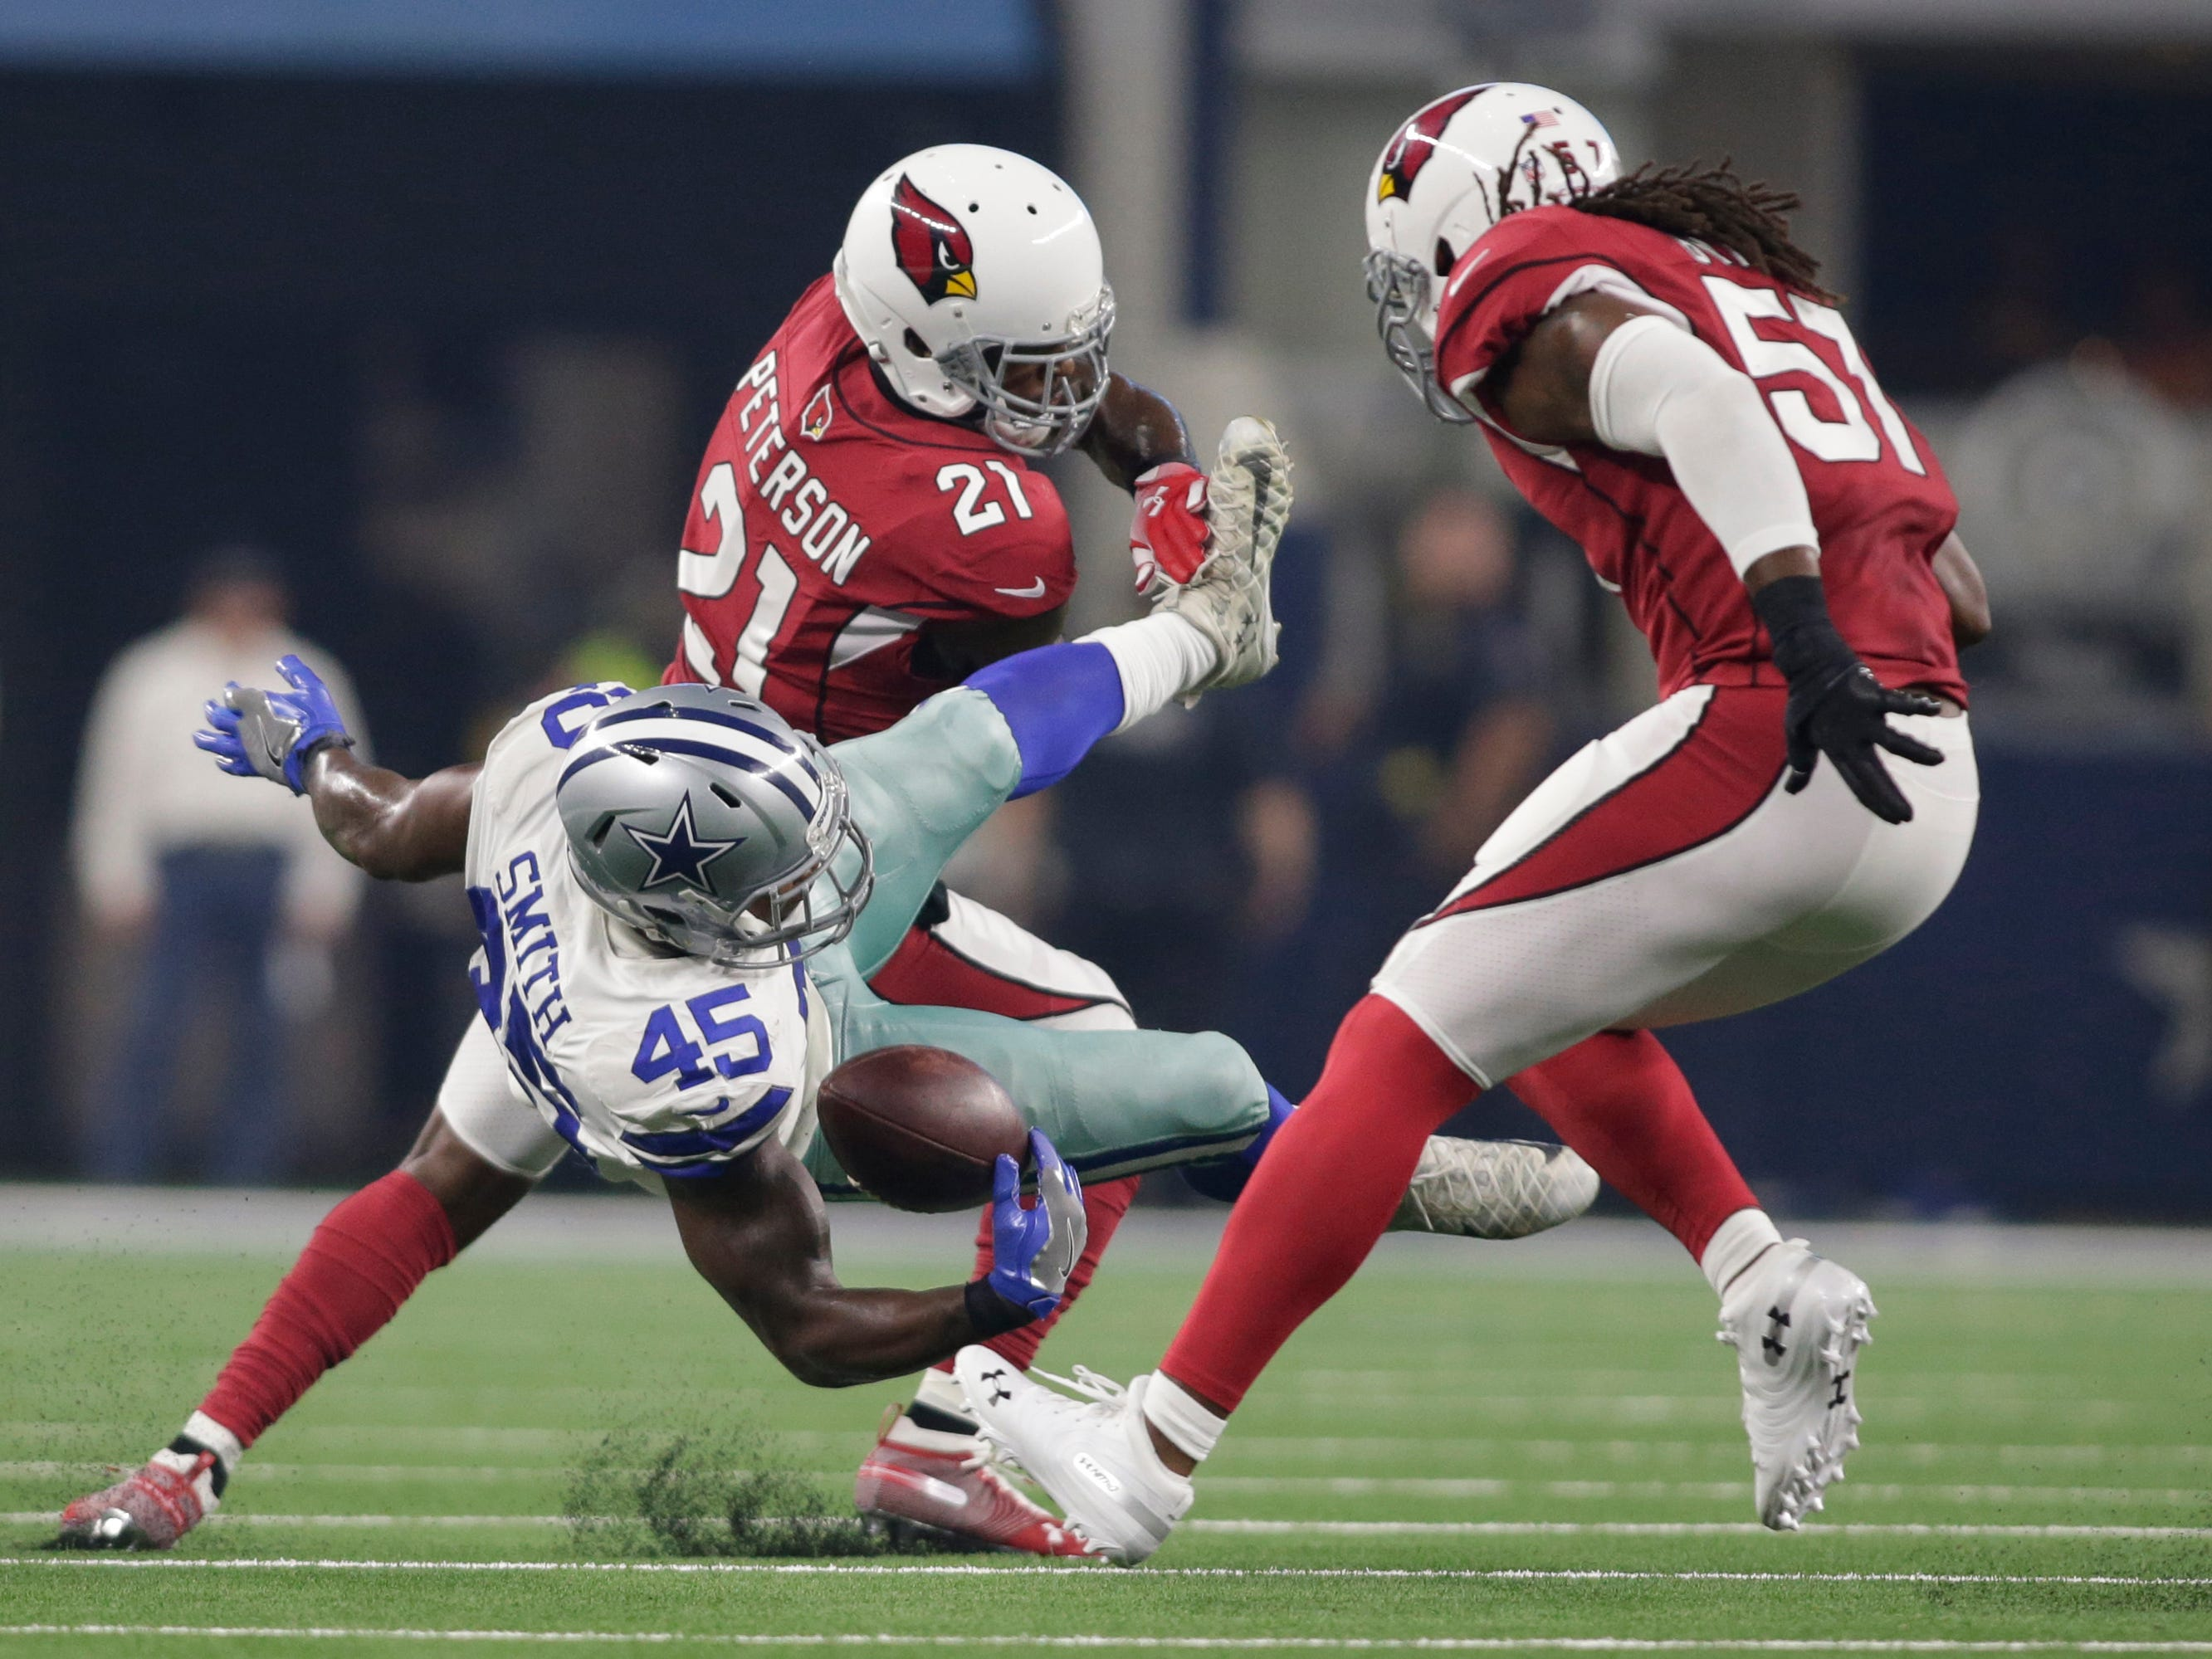 Aug 26, 2018; Arlington, TX, USA; Arizona Cardinals defensive back Patrick Peterson (21) tackles and causes a fumble by Dallas Cowboys running back Rod Smith (45) as Cardinals linebacker Josh Bynes (57) reacts during the first quarter at AT&T Stadium.